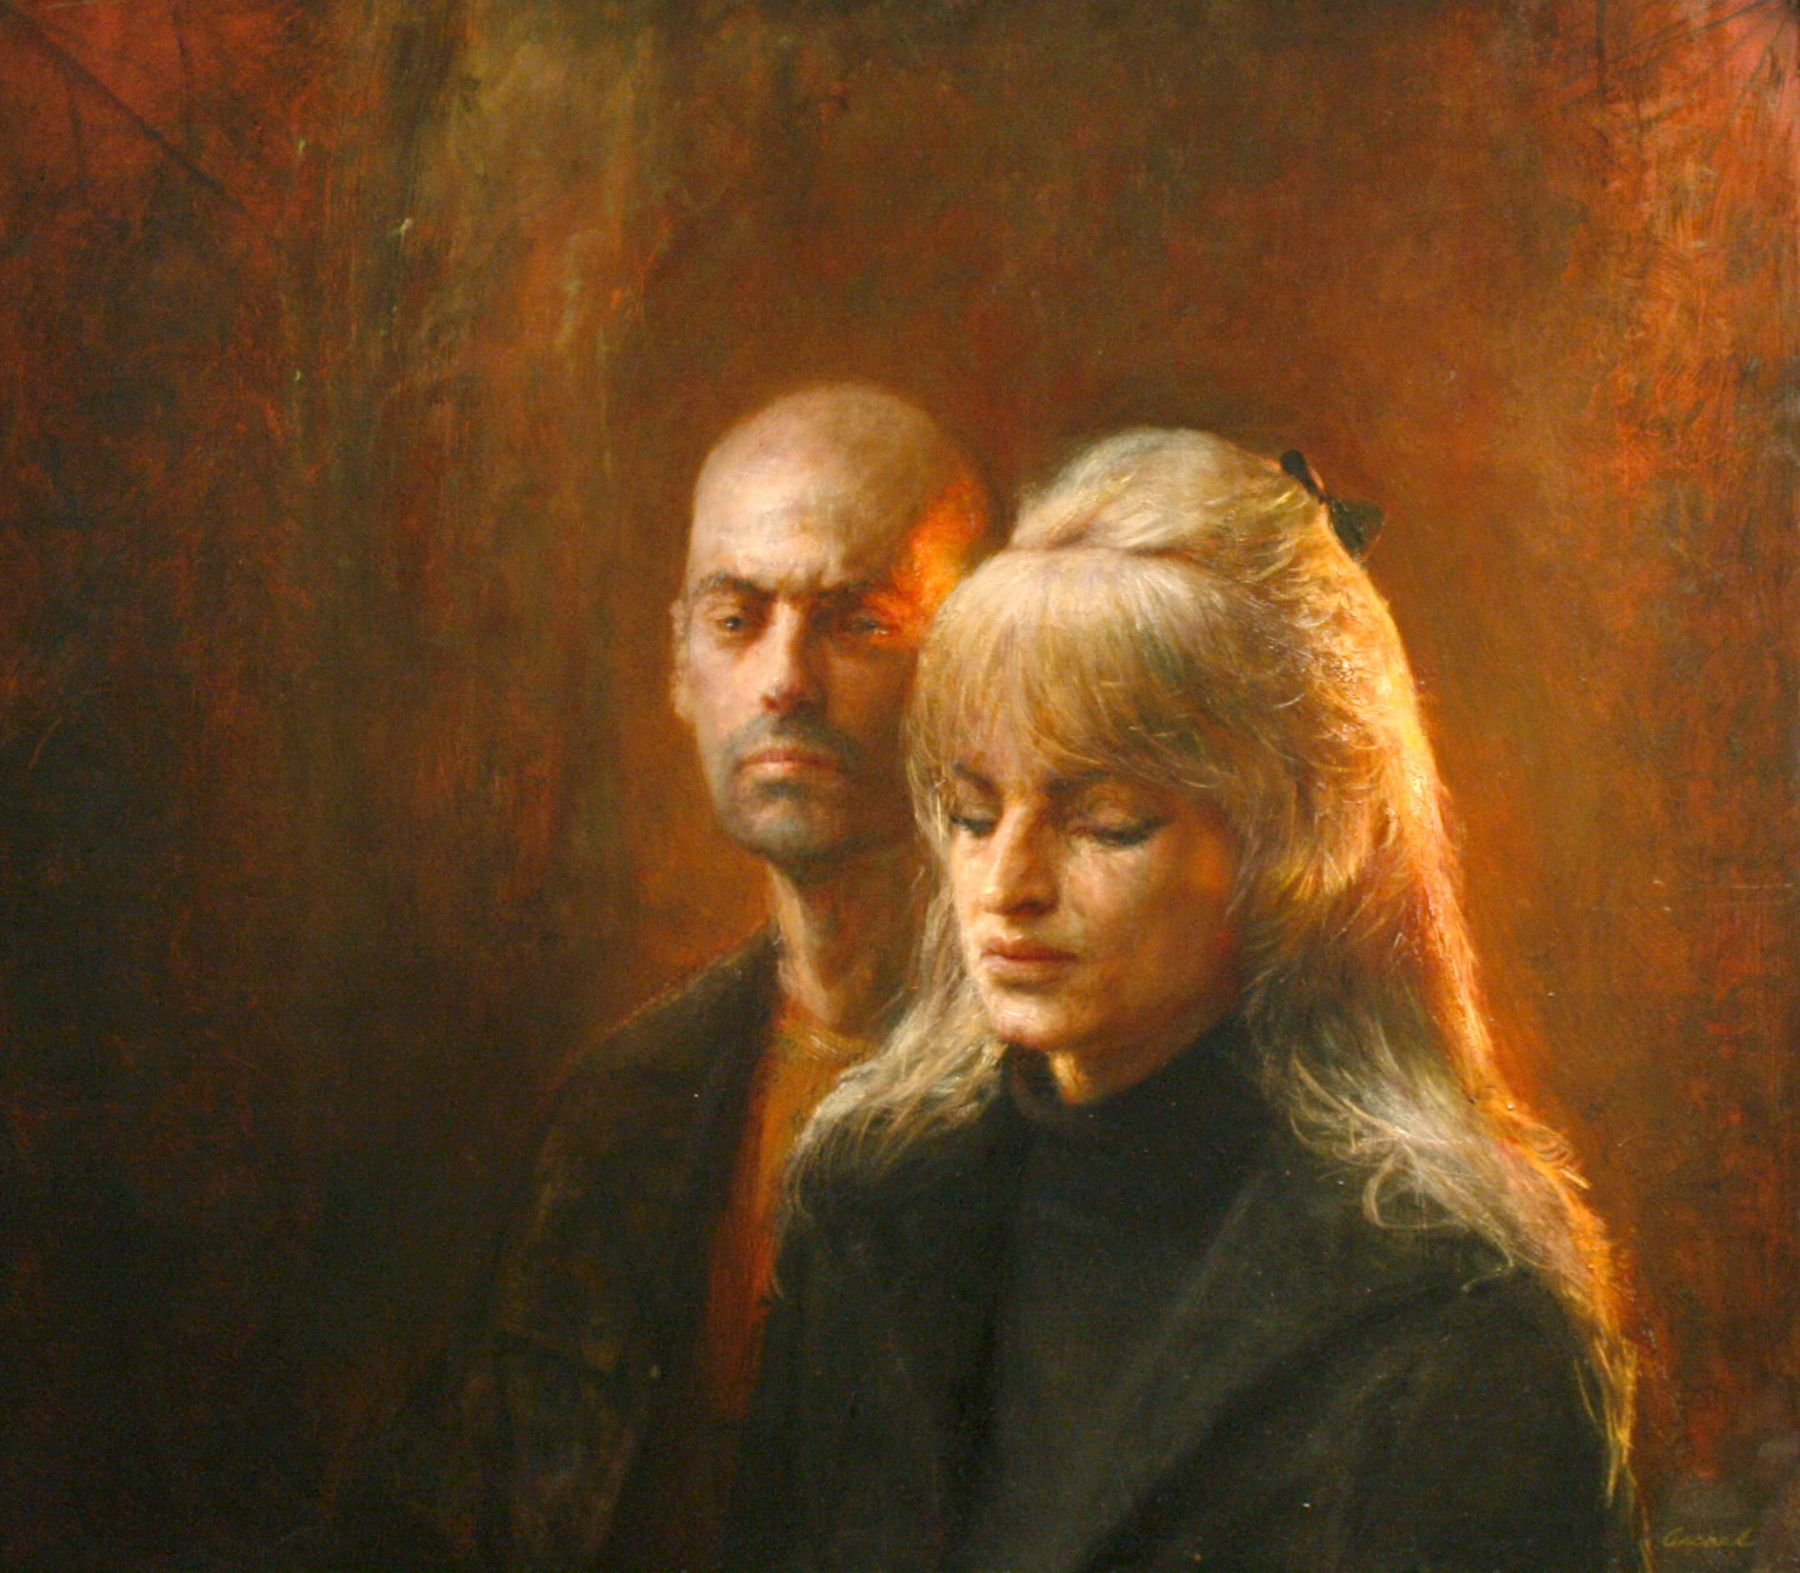 Steven Assael, Elena and Mark, 2008, oil on panel, 33 1/2 x 38 inches